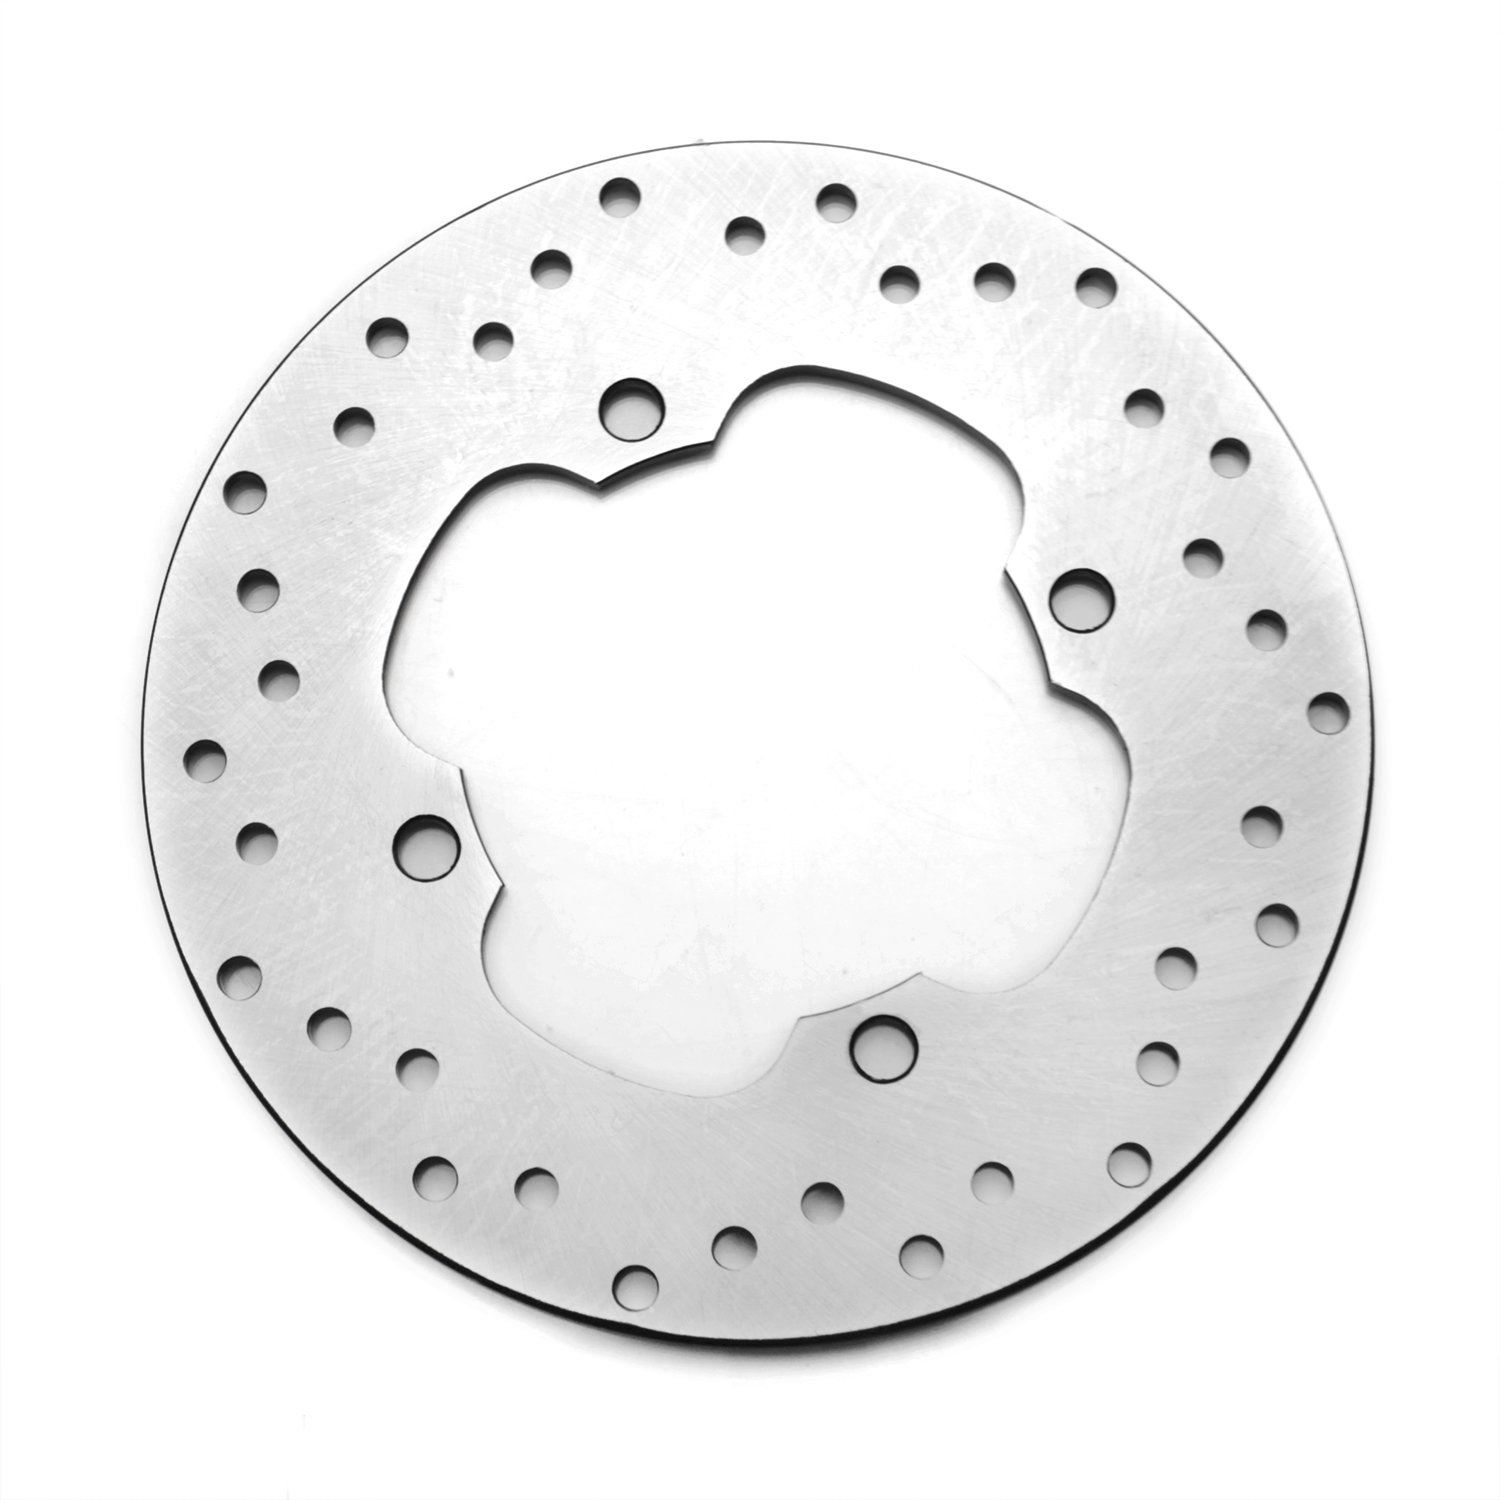 ANUESN Motorcycle Rear Brake Disc Fit For HONDA CBR250 CBR400 CBR600 CBR900 CBR1000 by ANUESN (Image #5)